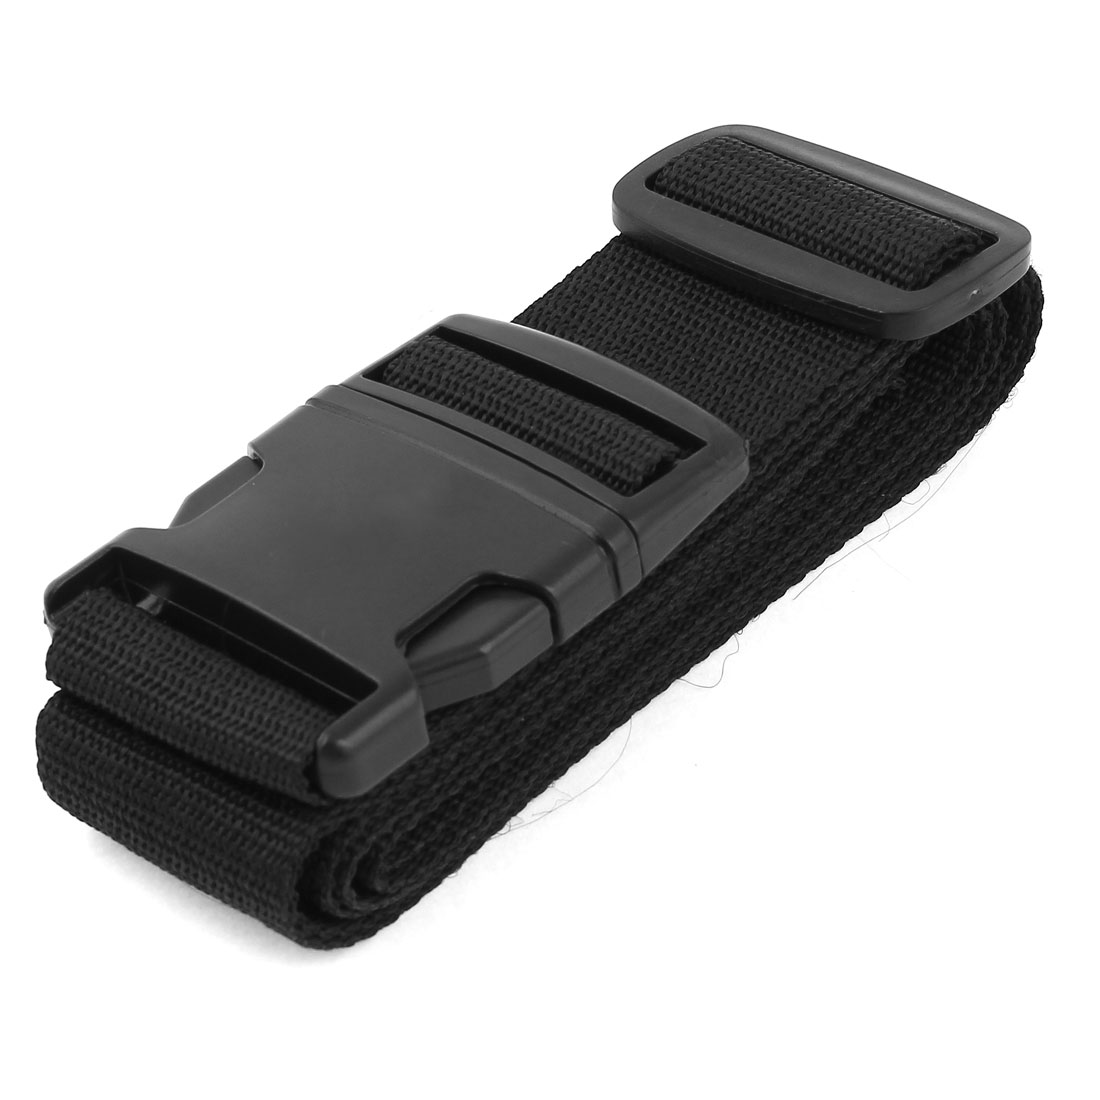 "Travel Quick Release Buckle Luggage Strap 101cm 3.3ft Long 2"" Width Black"